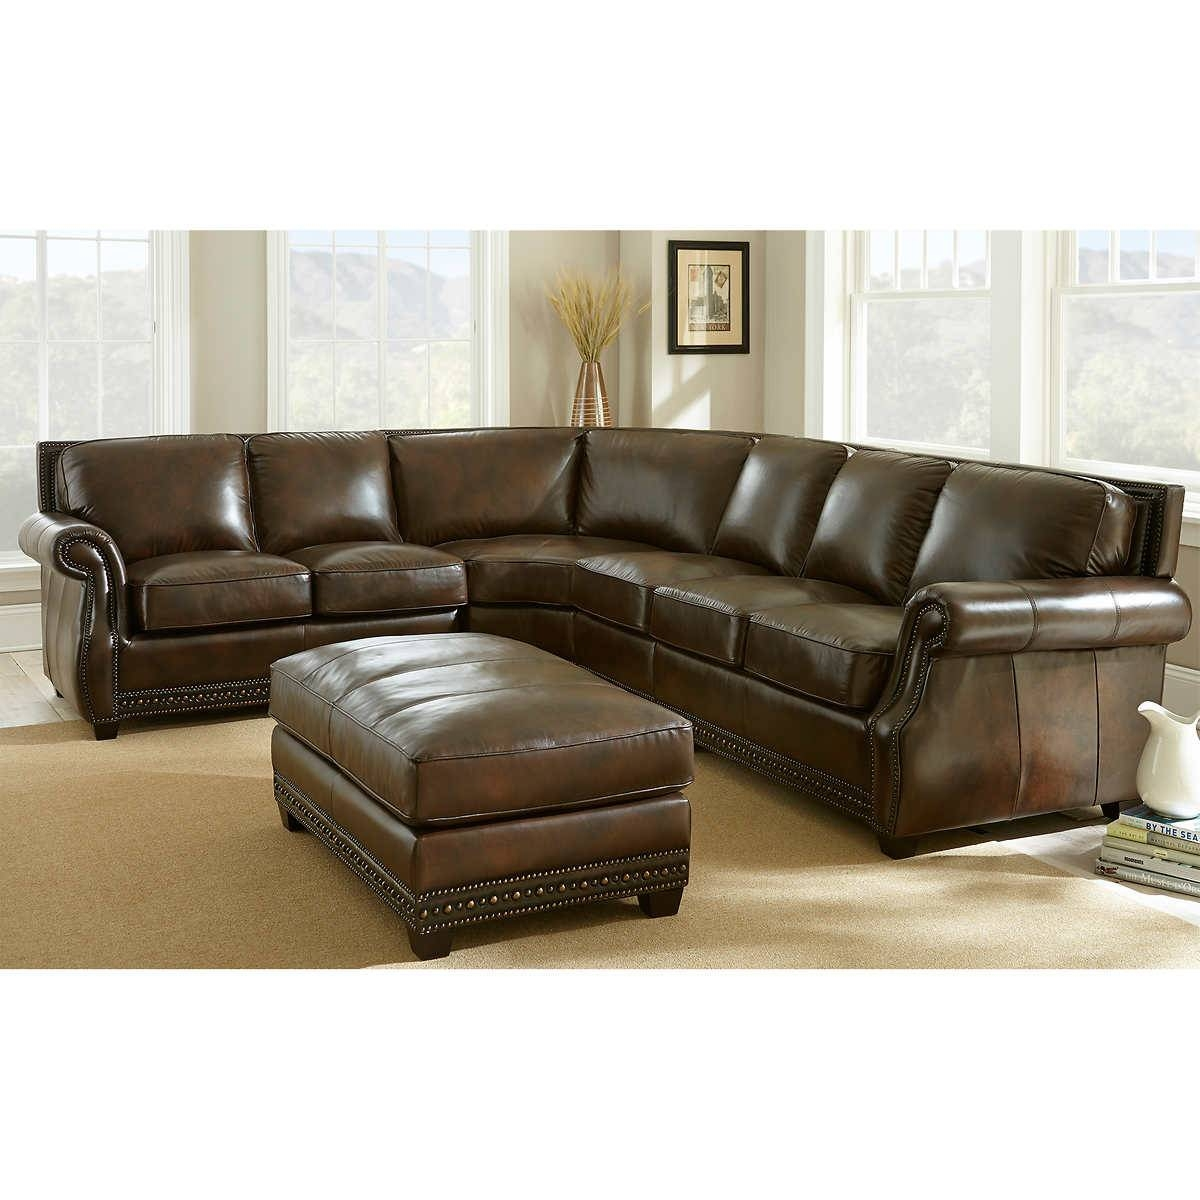 Good Large Sectional Leather Sofas 93 In Jennifer Sofas And throughout Jennifer Sofas And Sectionals (Image 10 of 15)